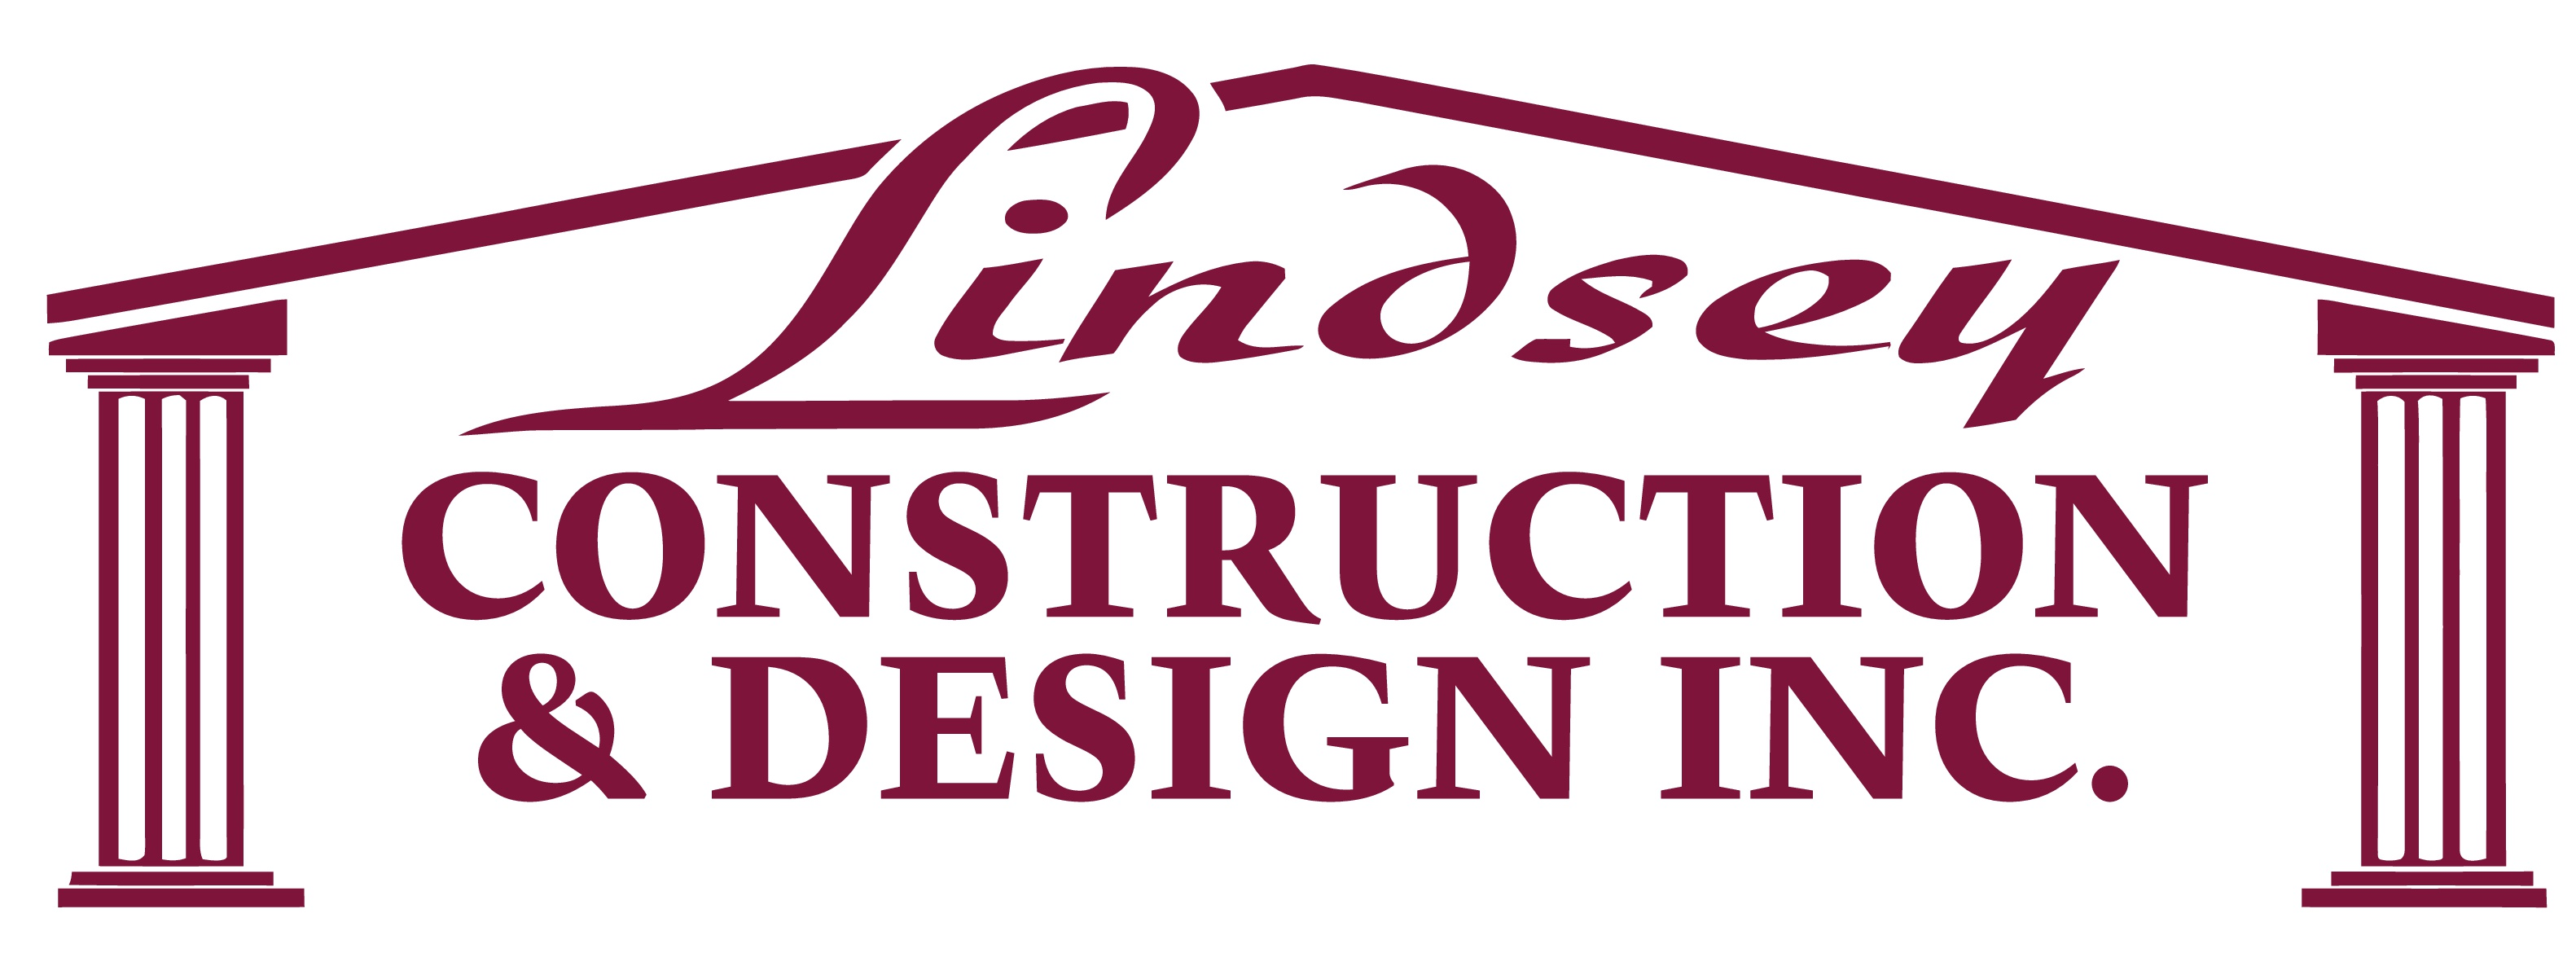 Lindsey Construction & Design - 2018 Team Sponsor